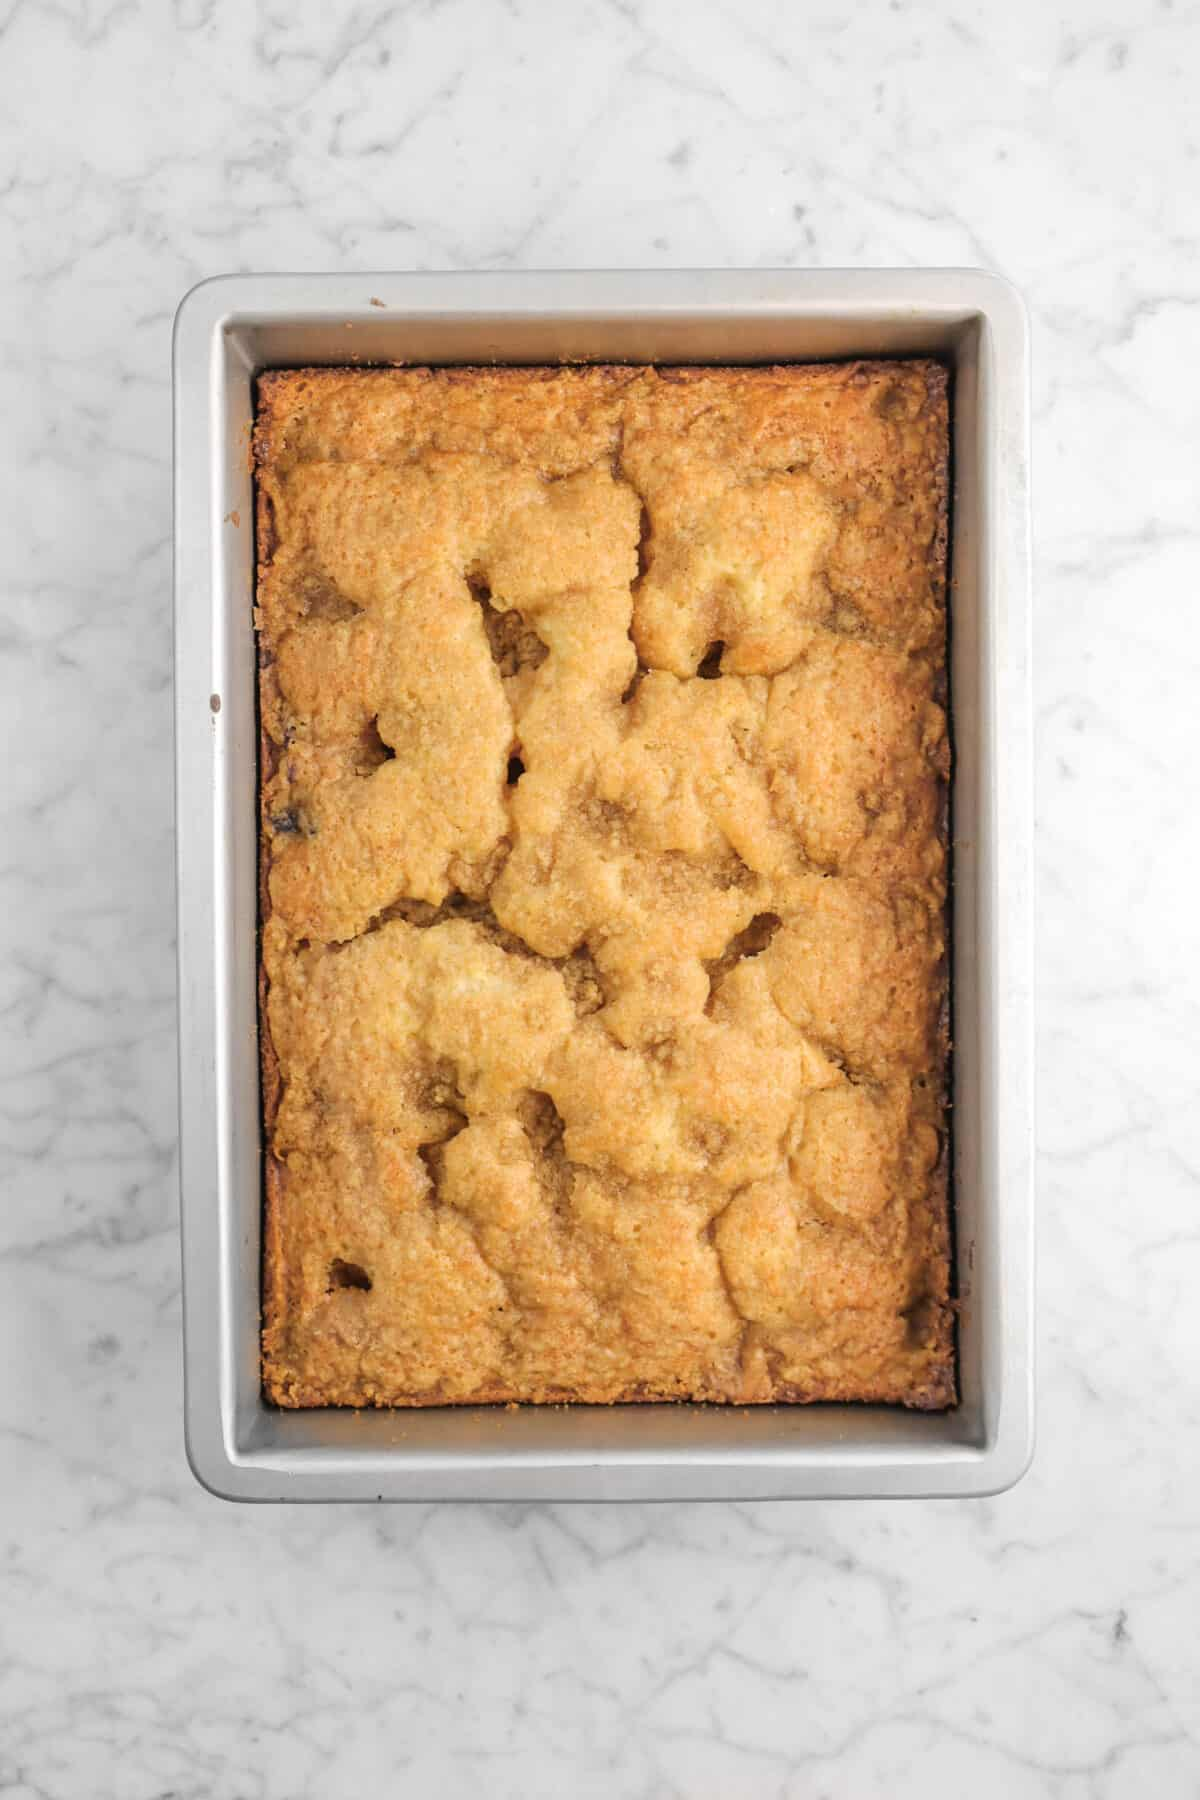 blueberry buckle baked in rectangular pan